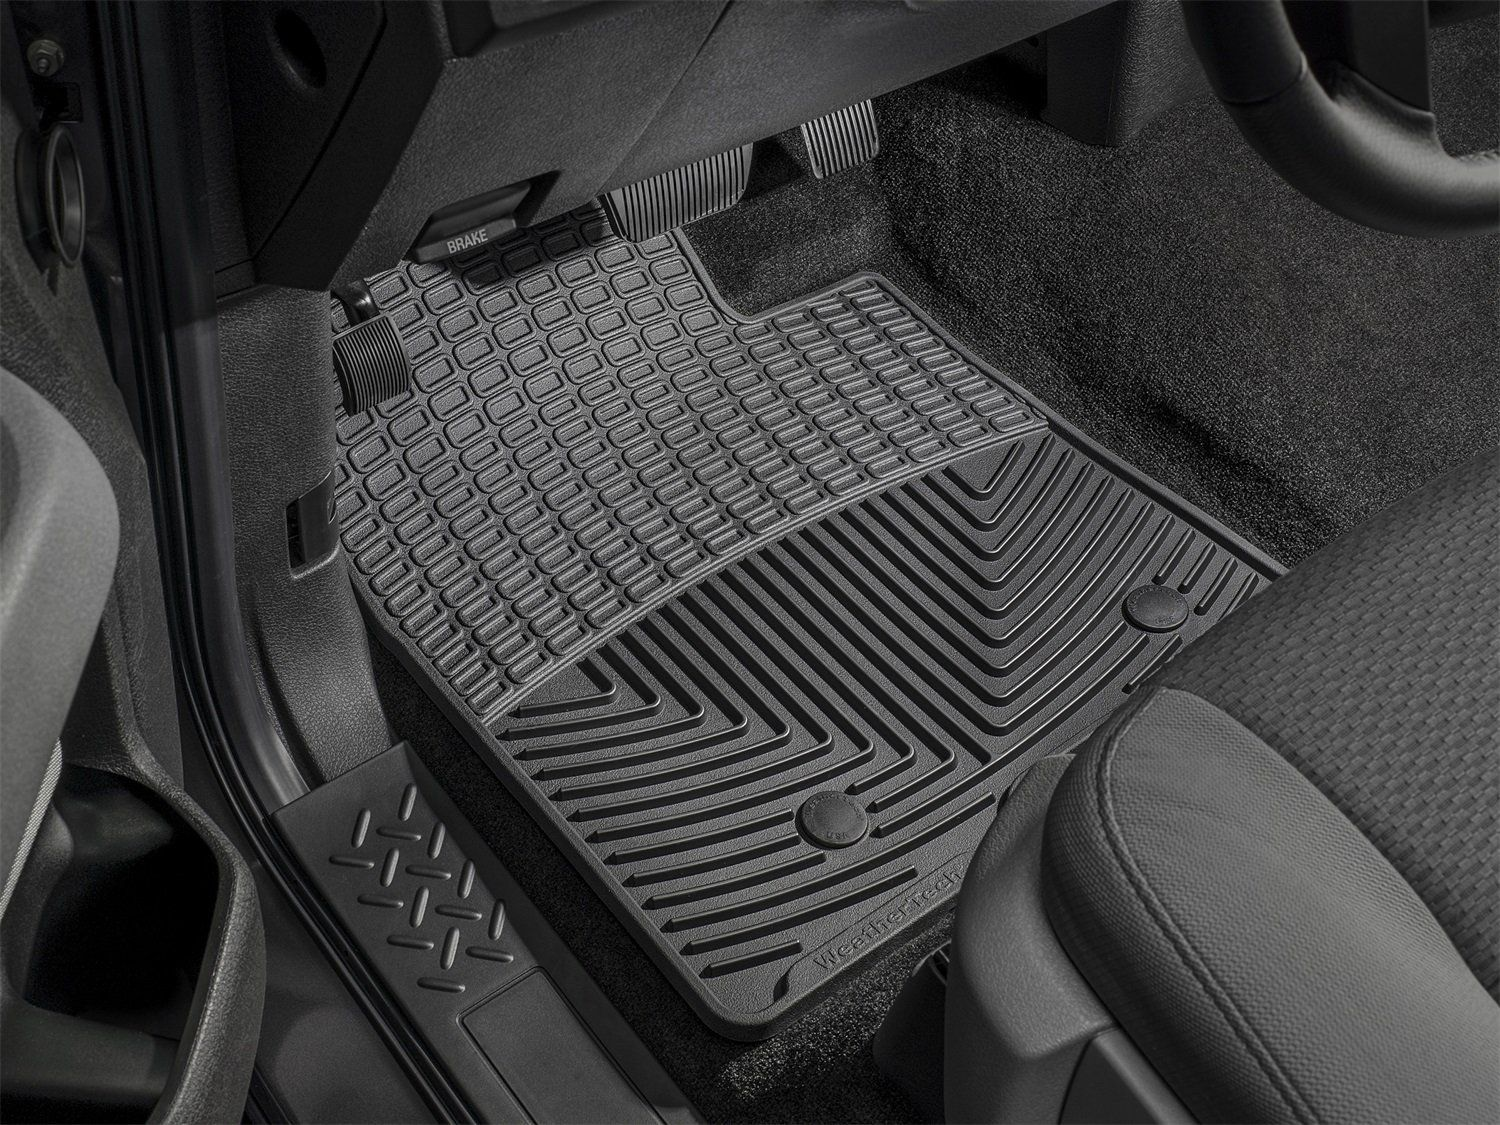 WeatherTech W183 Floor Mat Rubber Front Click image for